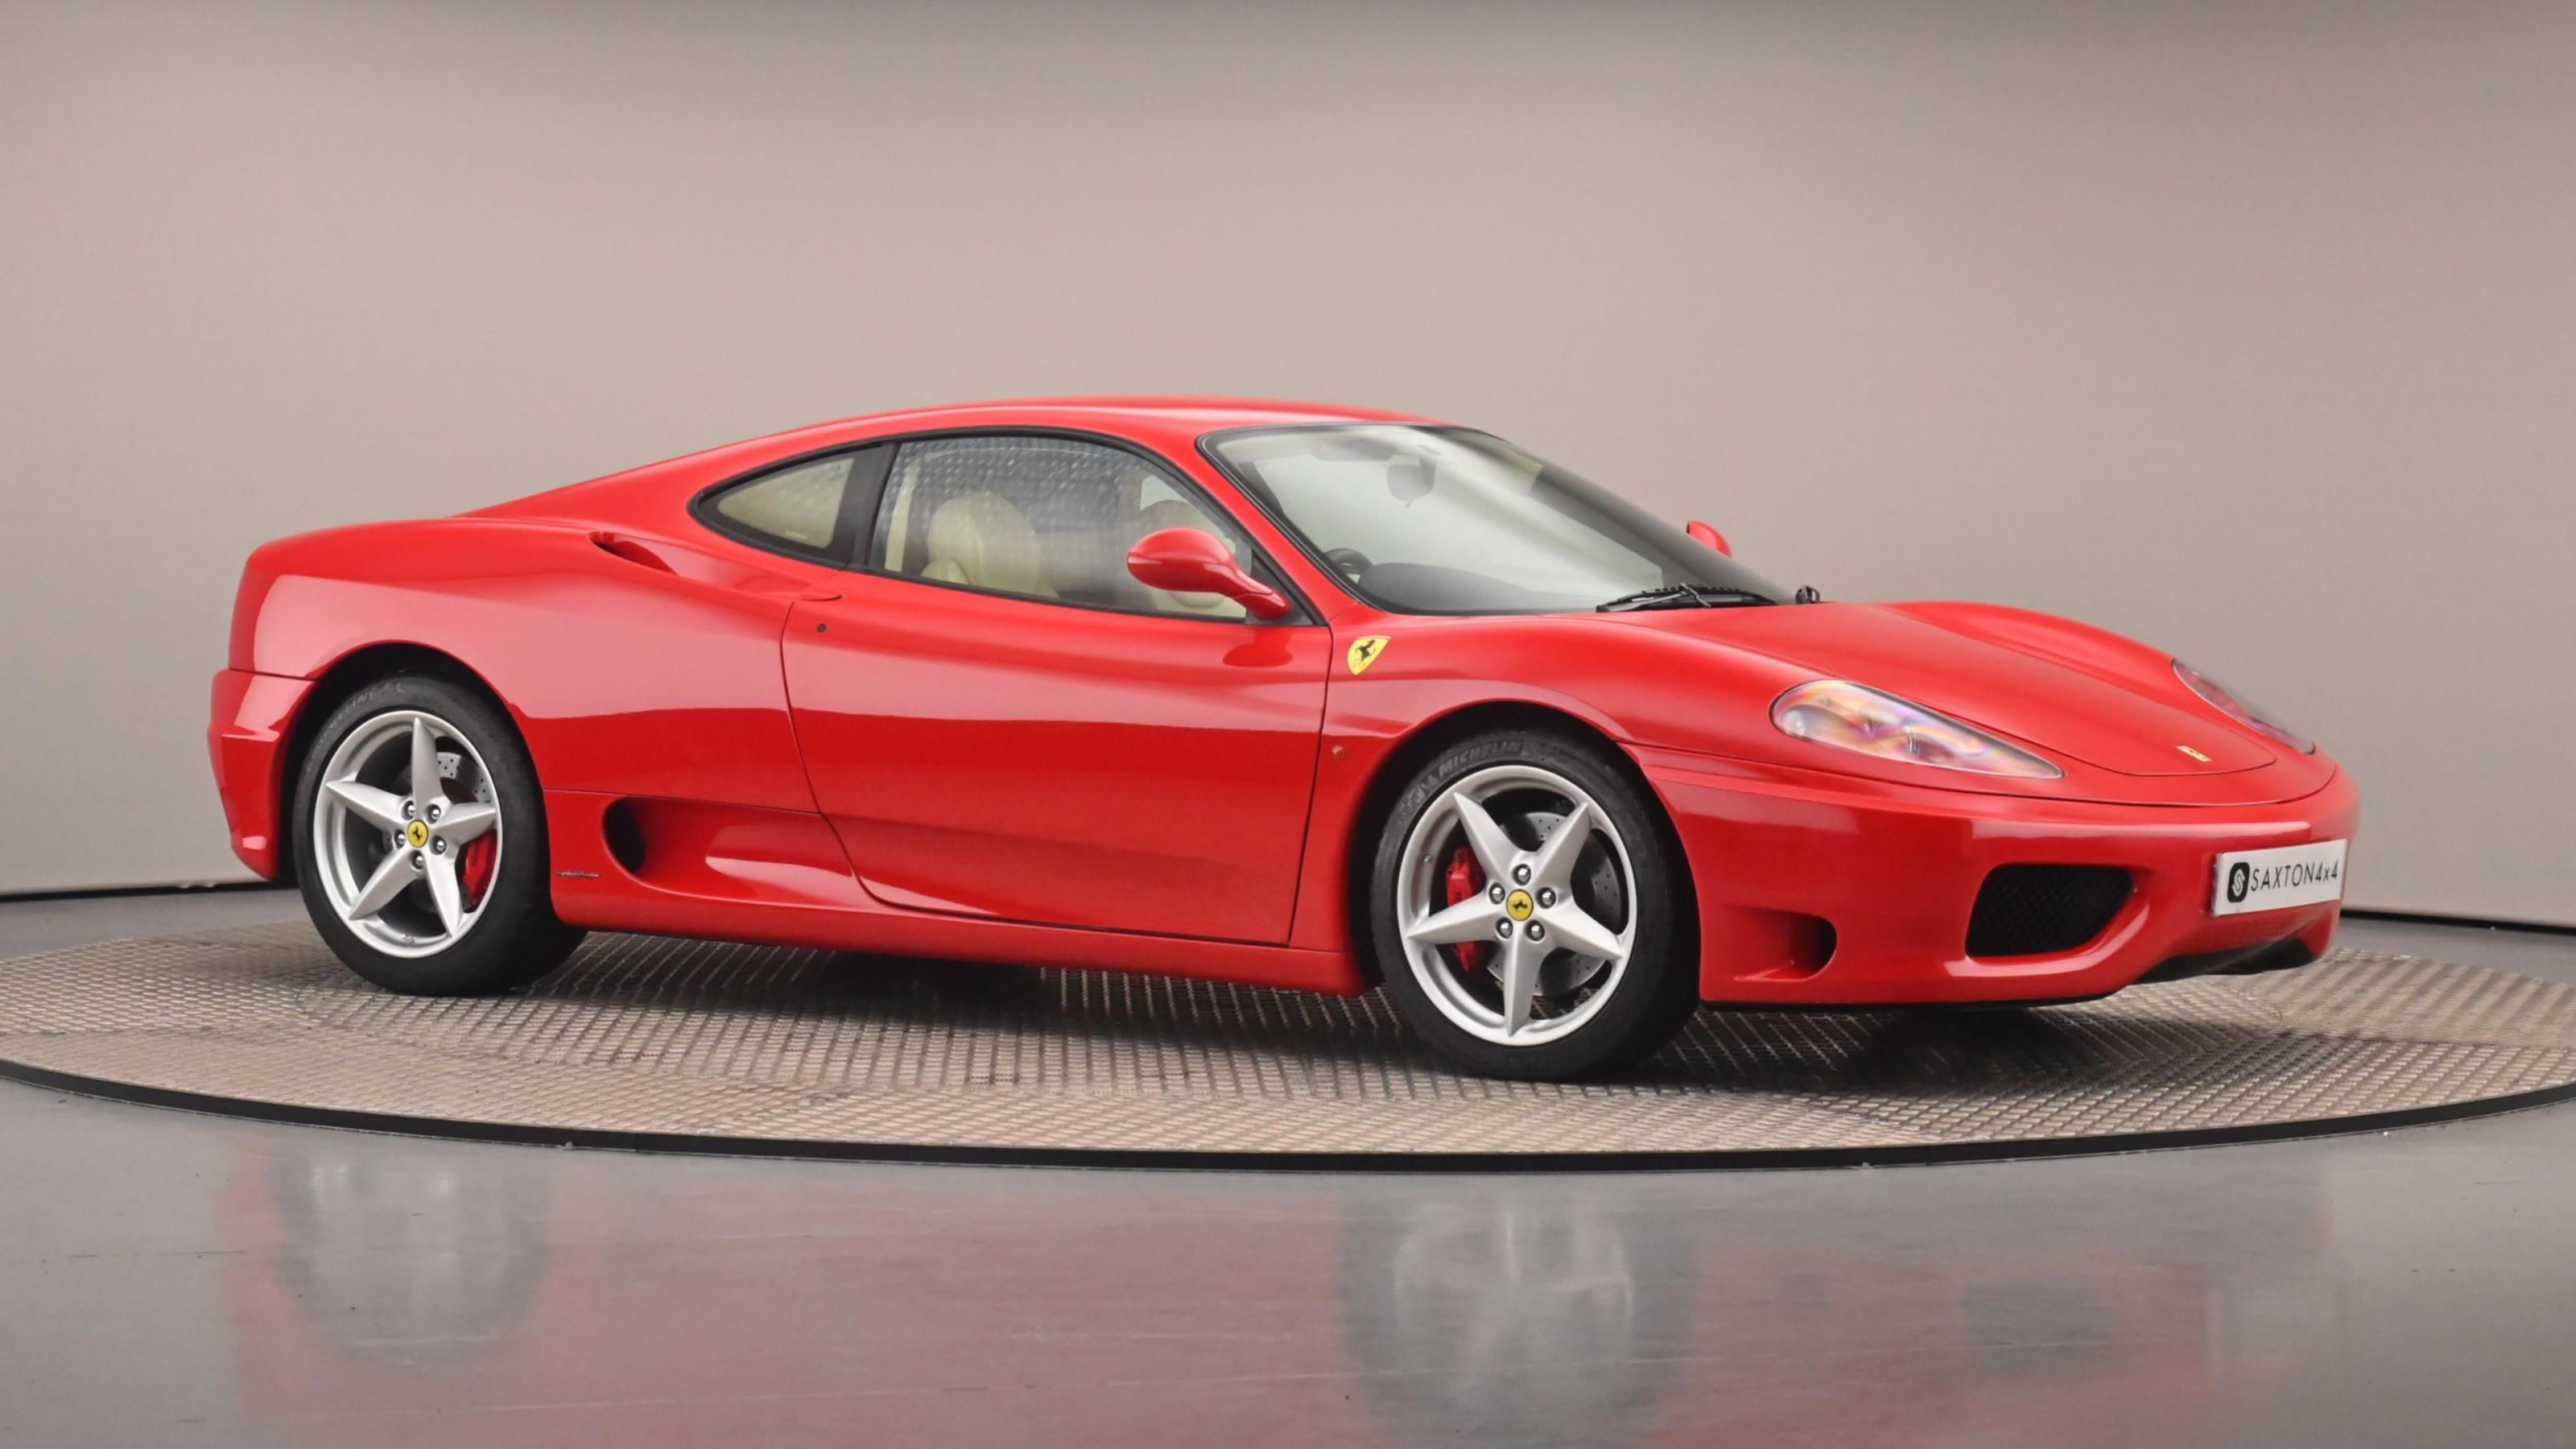 Used 1999 Ferrari 360M Modena 2dr F1 RED at Saxton4x4